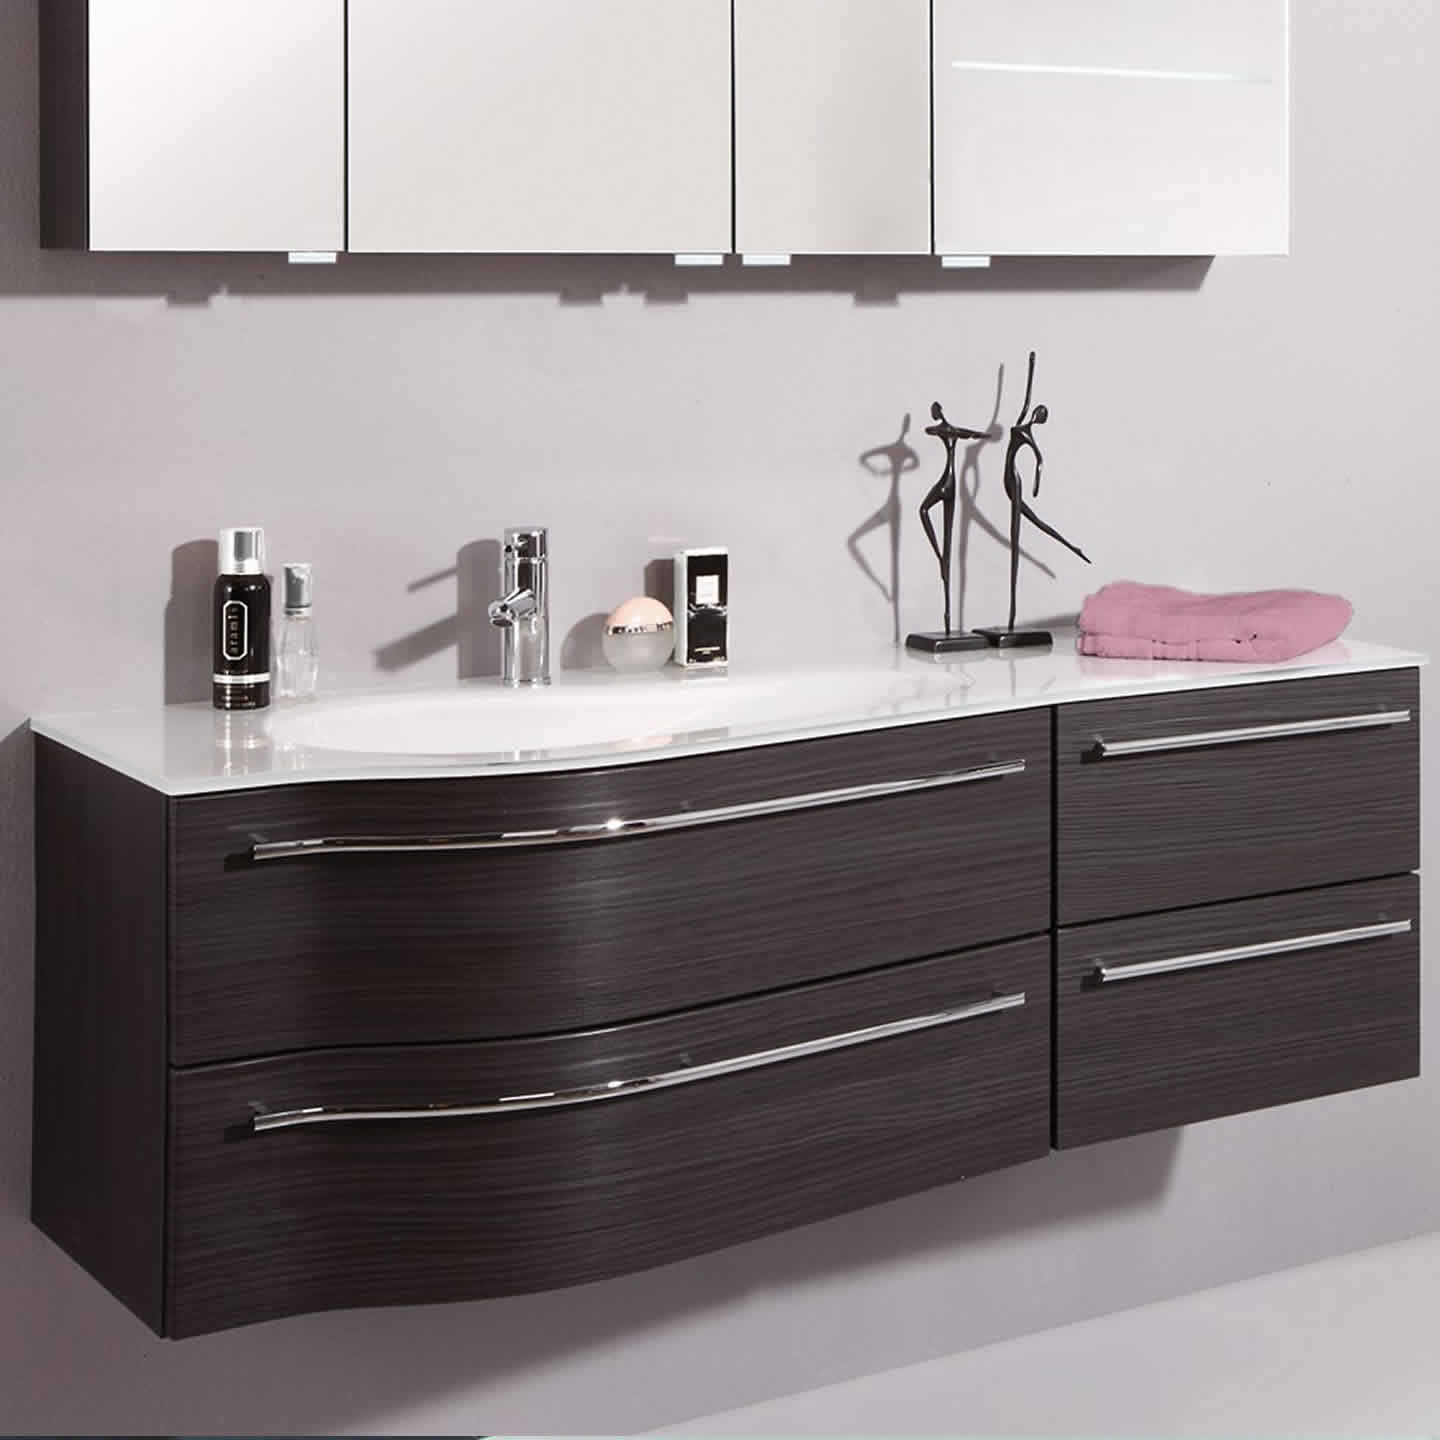 waschtisch 140 cm breit badm bel set cardiff mit waschtisch 7 teilig 140 cm badm bel set rima. Black Bedroom Furniture Sets. Home Design Ideas